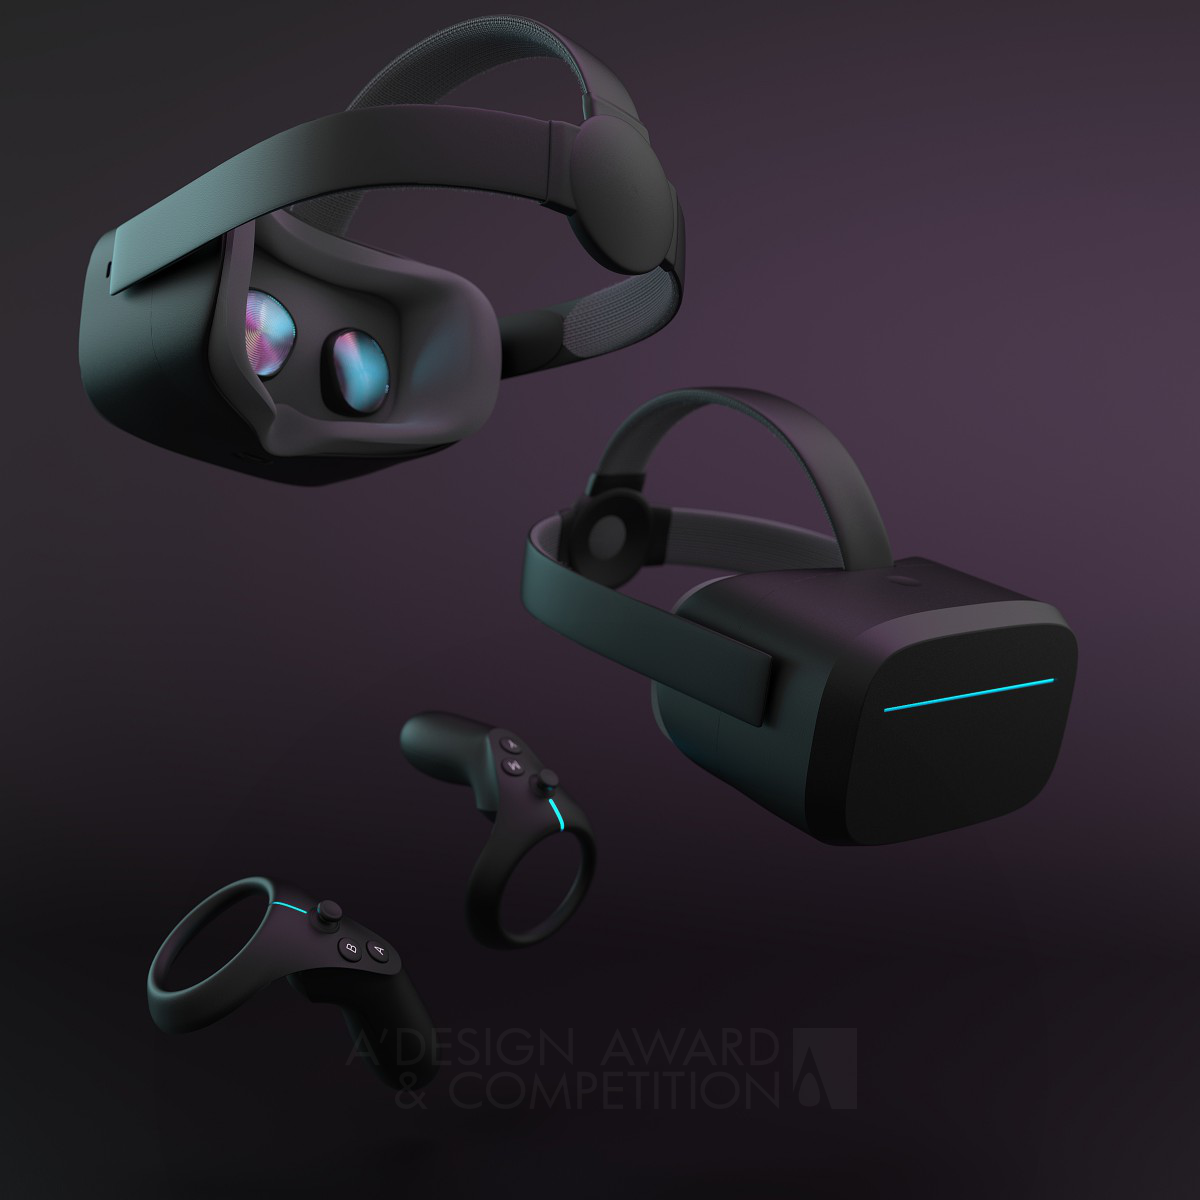 Pineal VR Headset